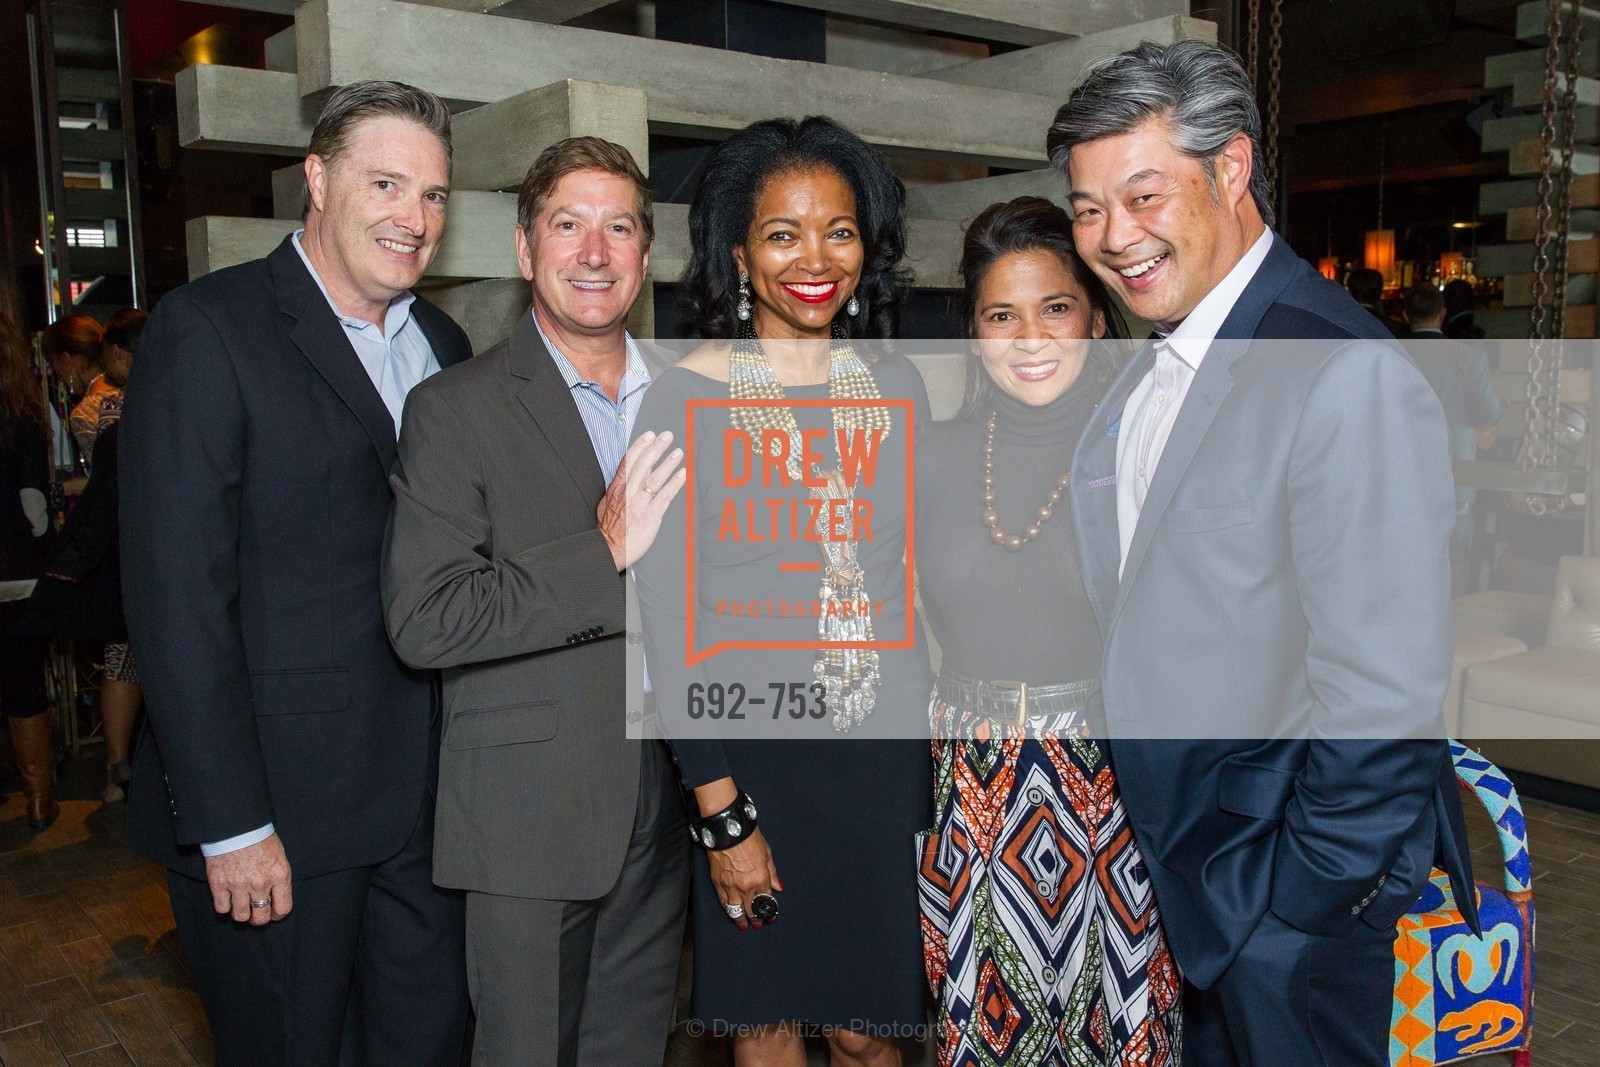 David Jones, Joe D'Alessandro, Denise Bradley Tyson, Darlene Fong, Rodney Fong, INSPIRED LUXE Launch Party Hosted by Denise Bradley Tyson, US, May 28th, 2015,Drew Altizer, Drew Altizer Photography, full-service agency, private events, San Francisco photographer, photographer california